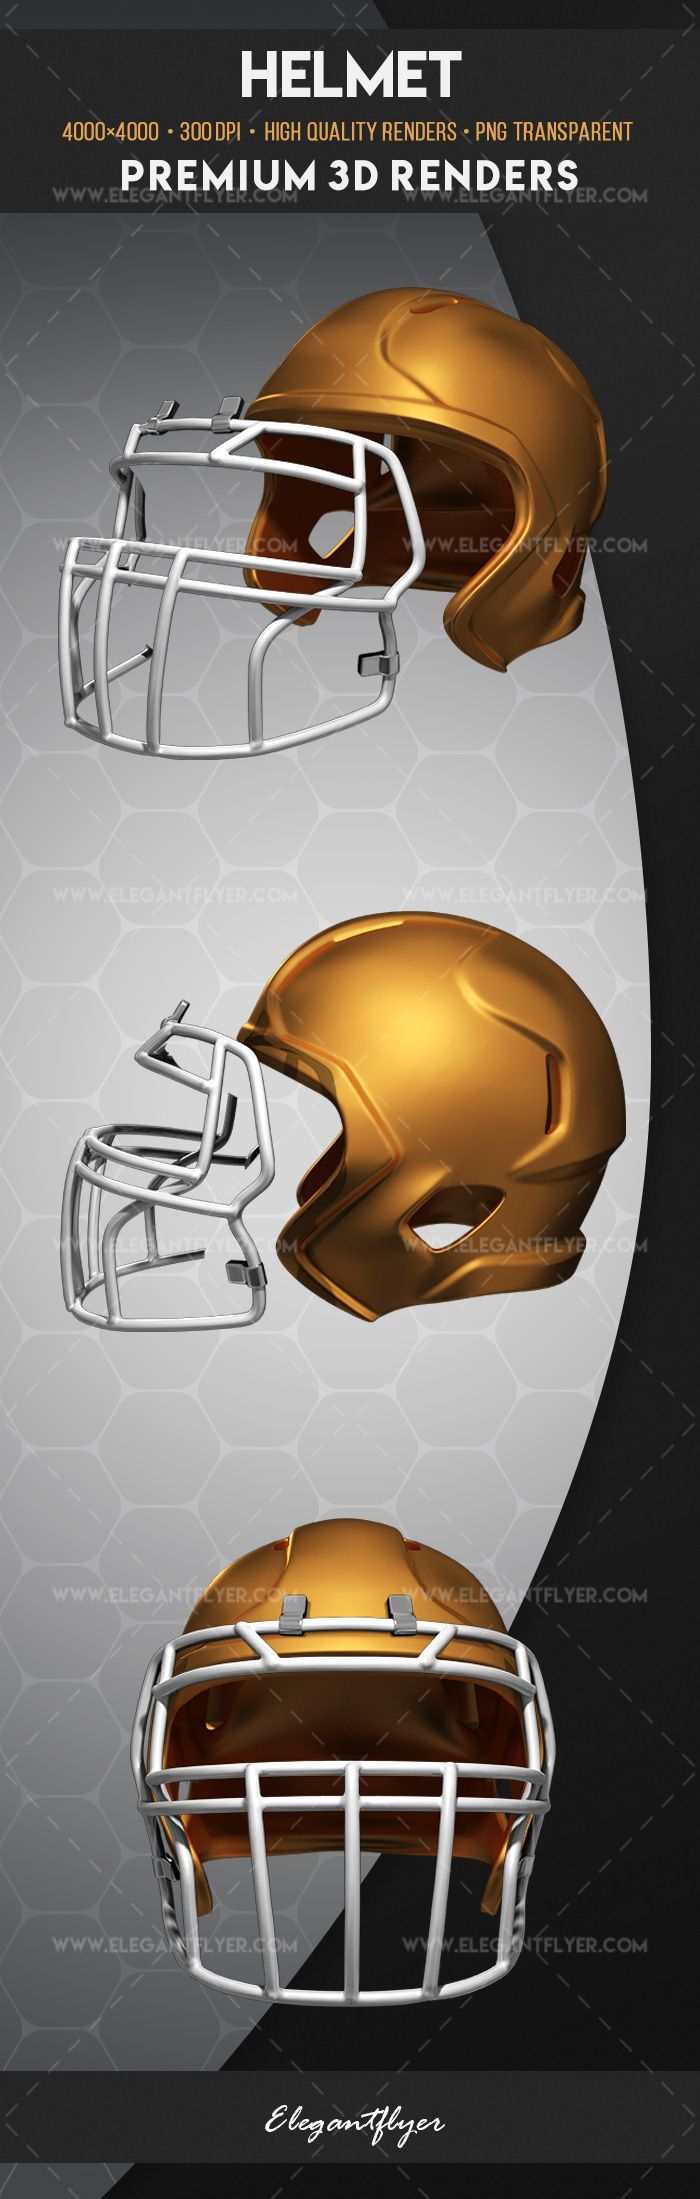 helmet premium 3d render templates by elegantflyer. Black Bedroom Furniture Sets. Home Design Ideas